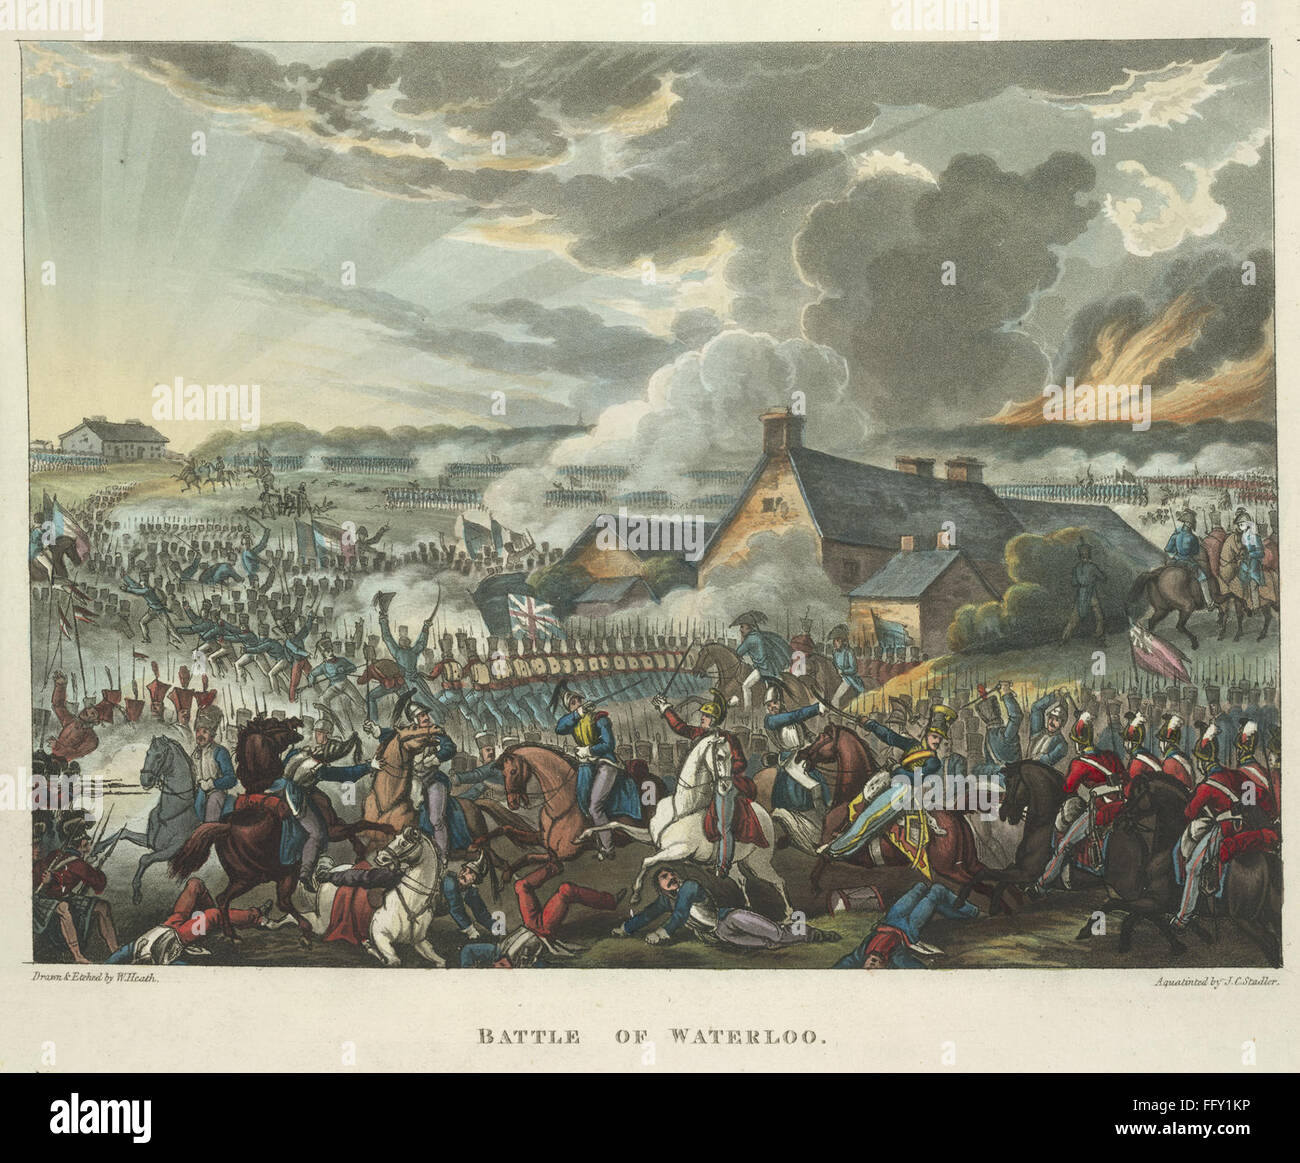 a narrative poem ... - caption; 'The Battle of Waterloo, June 18th 1815. Depicting Arthur Wellesley, the Duke - Stock Image